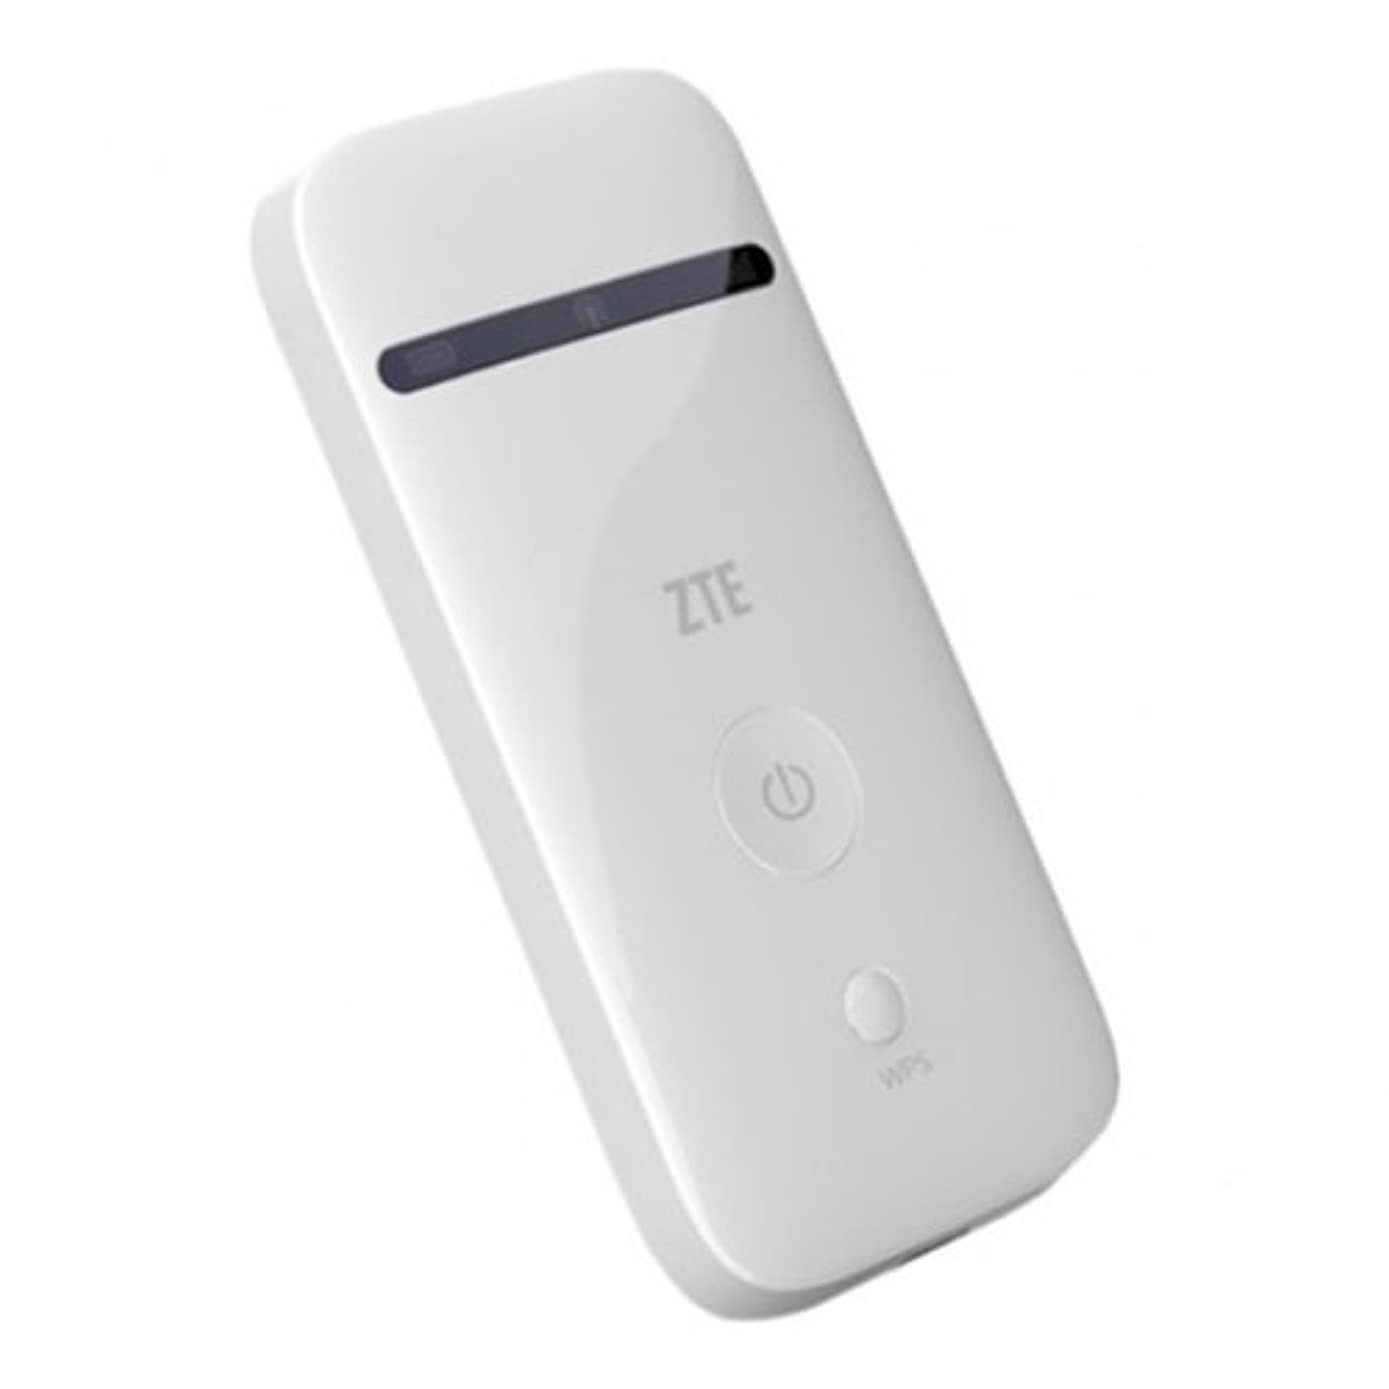 Hotspot Unlocked ZTE MF65 Router Gsm Mobile 3G up to 5 Wifi 850/2100 Mhz